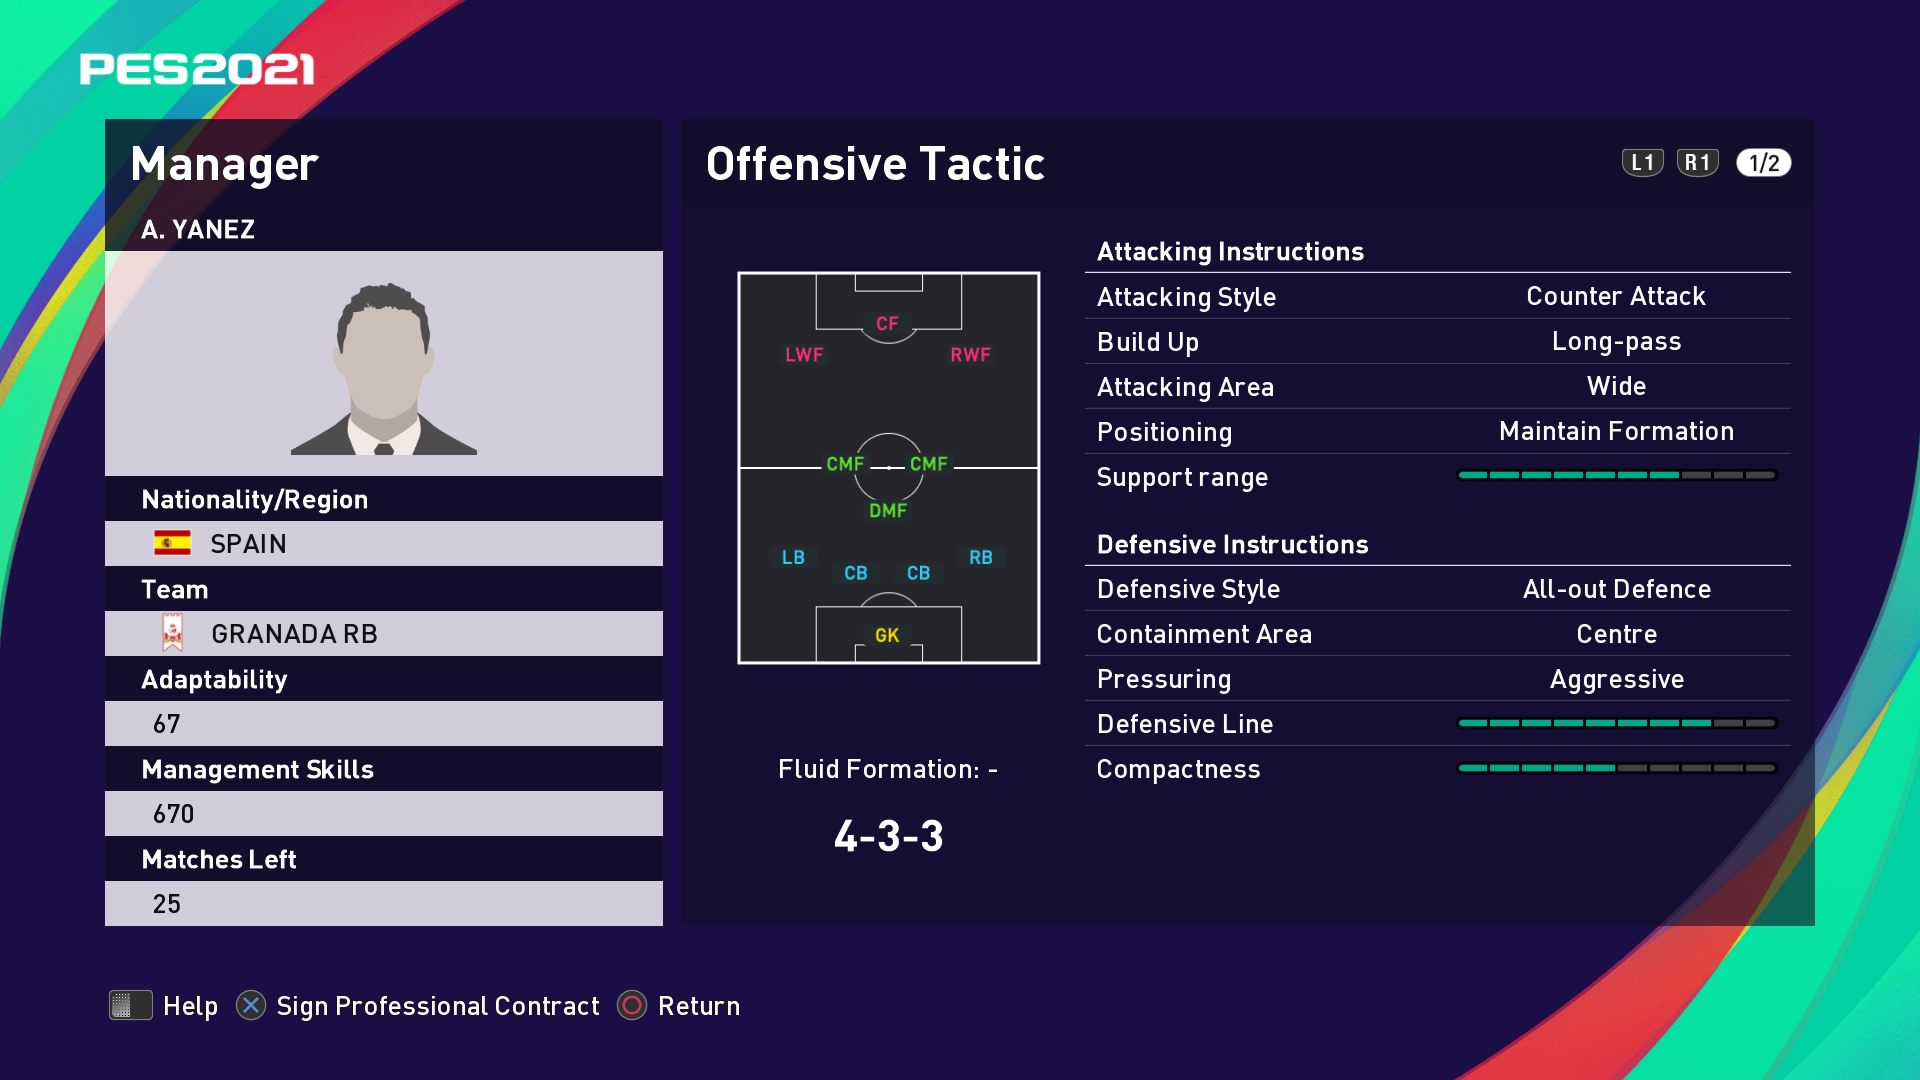 A. Yanez (Diego Martínez) Offensive Tactic in PES 2021 myClub